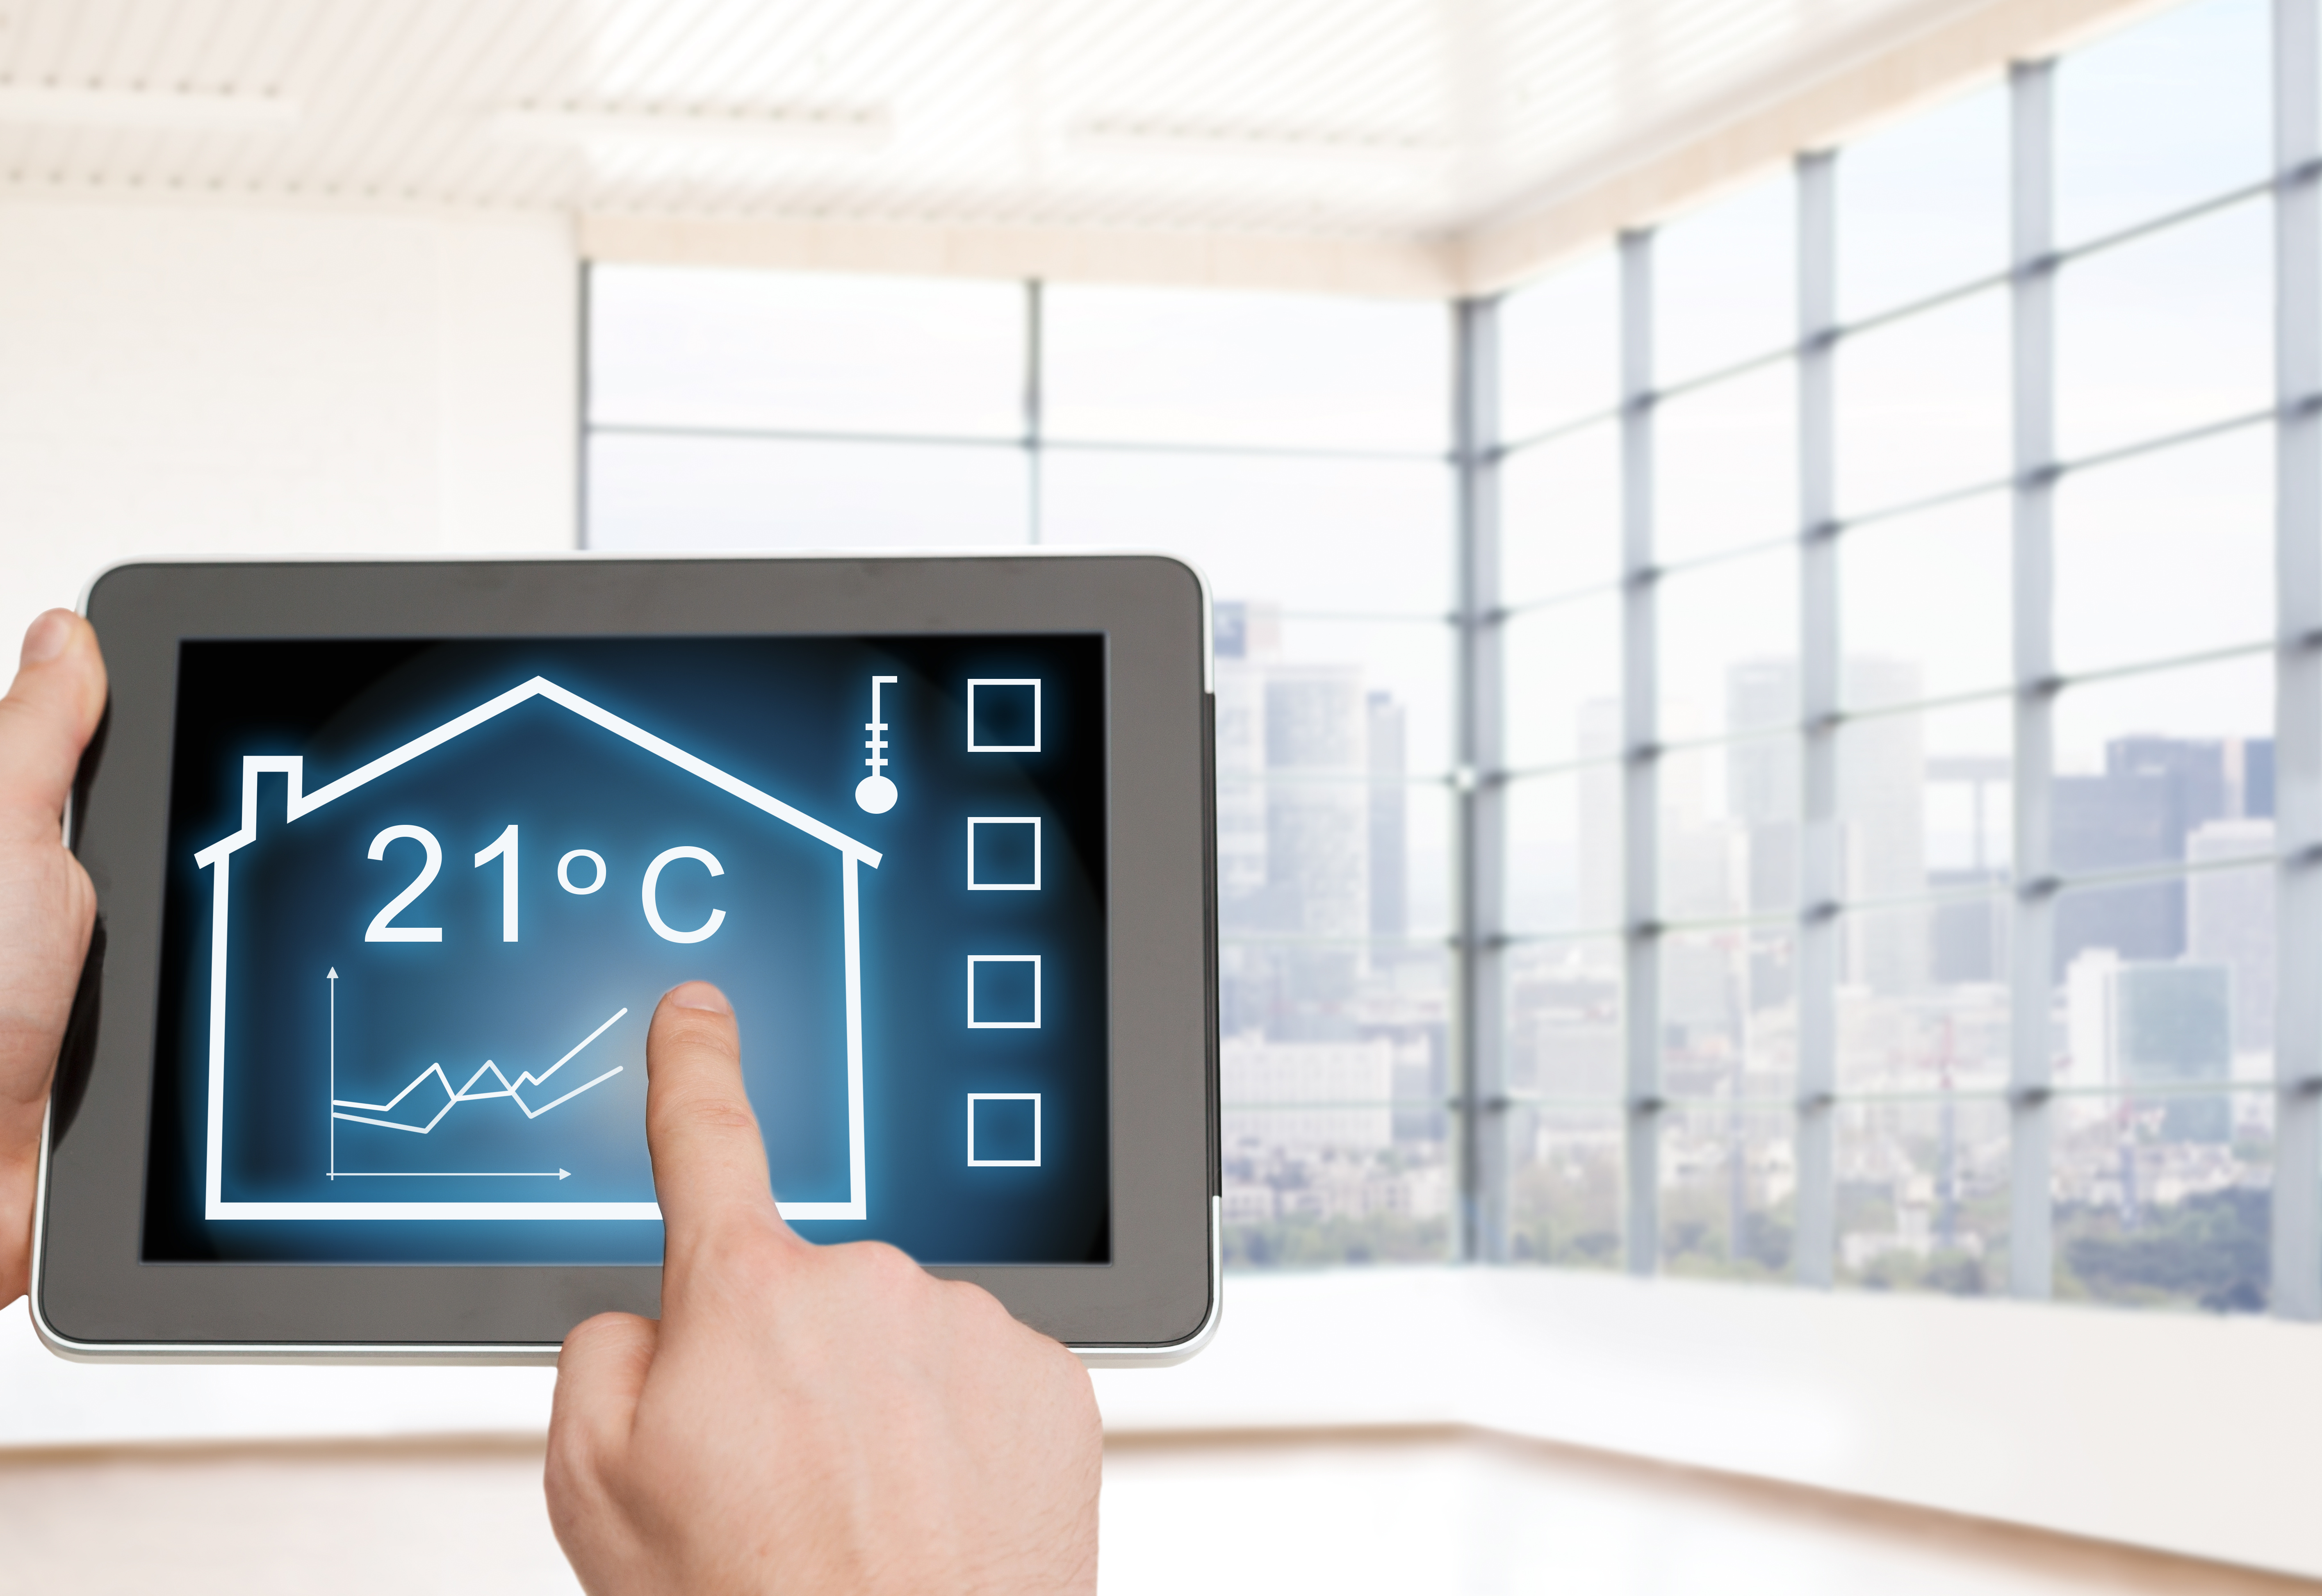 Omron Smart Homes And Buildings Solutions Improve Lives Electronics360 Power Relay G7l Accounted For 21 Percent Of Total Iot Use In Cities 2016 Will Represent The Fastest Growth Over Next Several Years